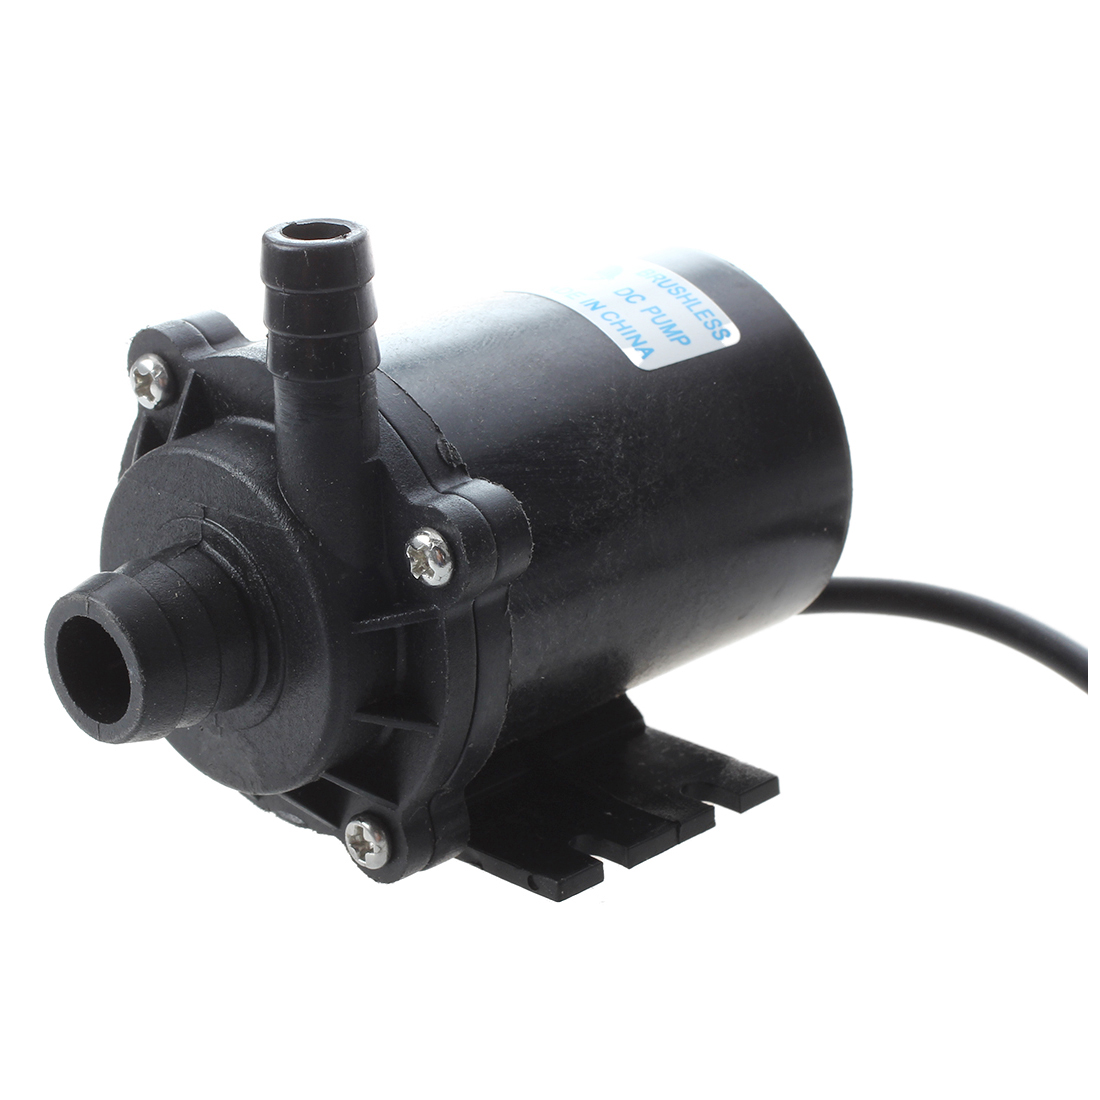 Submersible water pump for fountain pond brushless 24v for Pond water pump